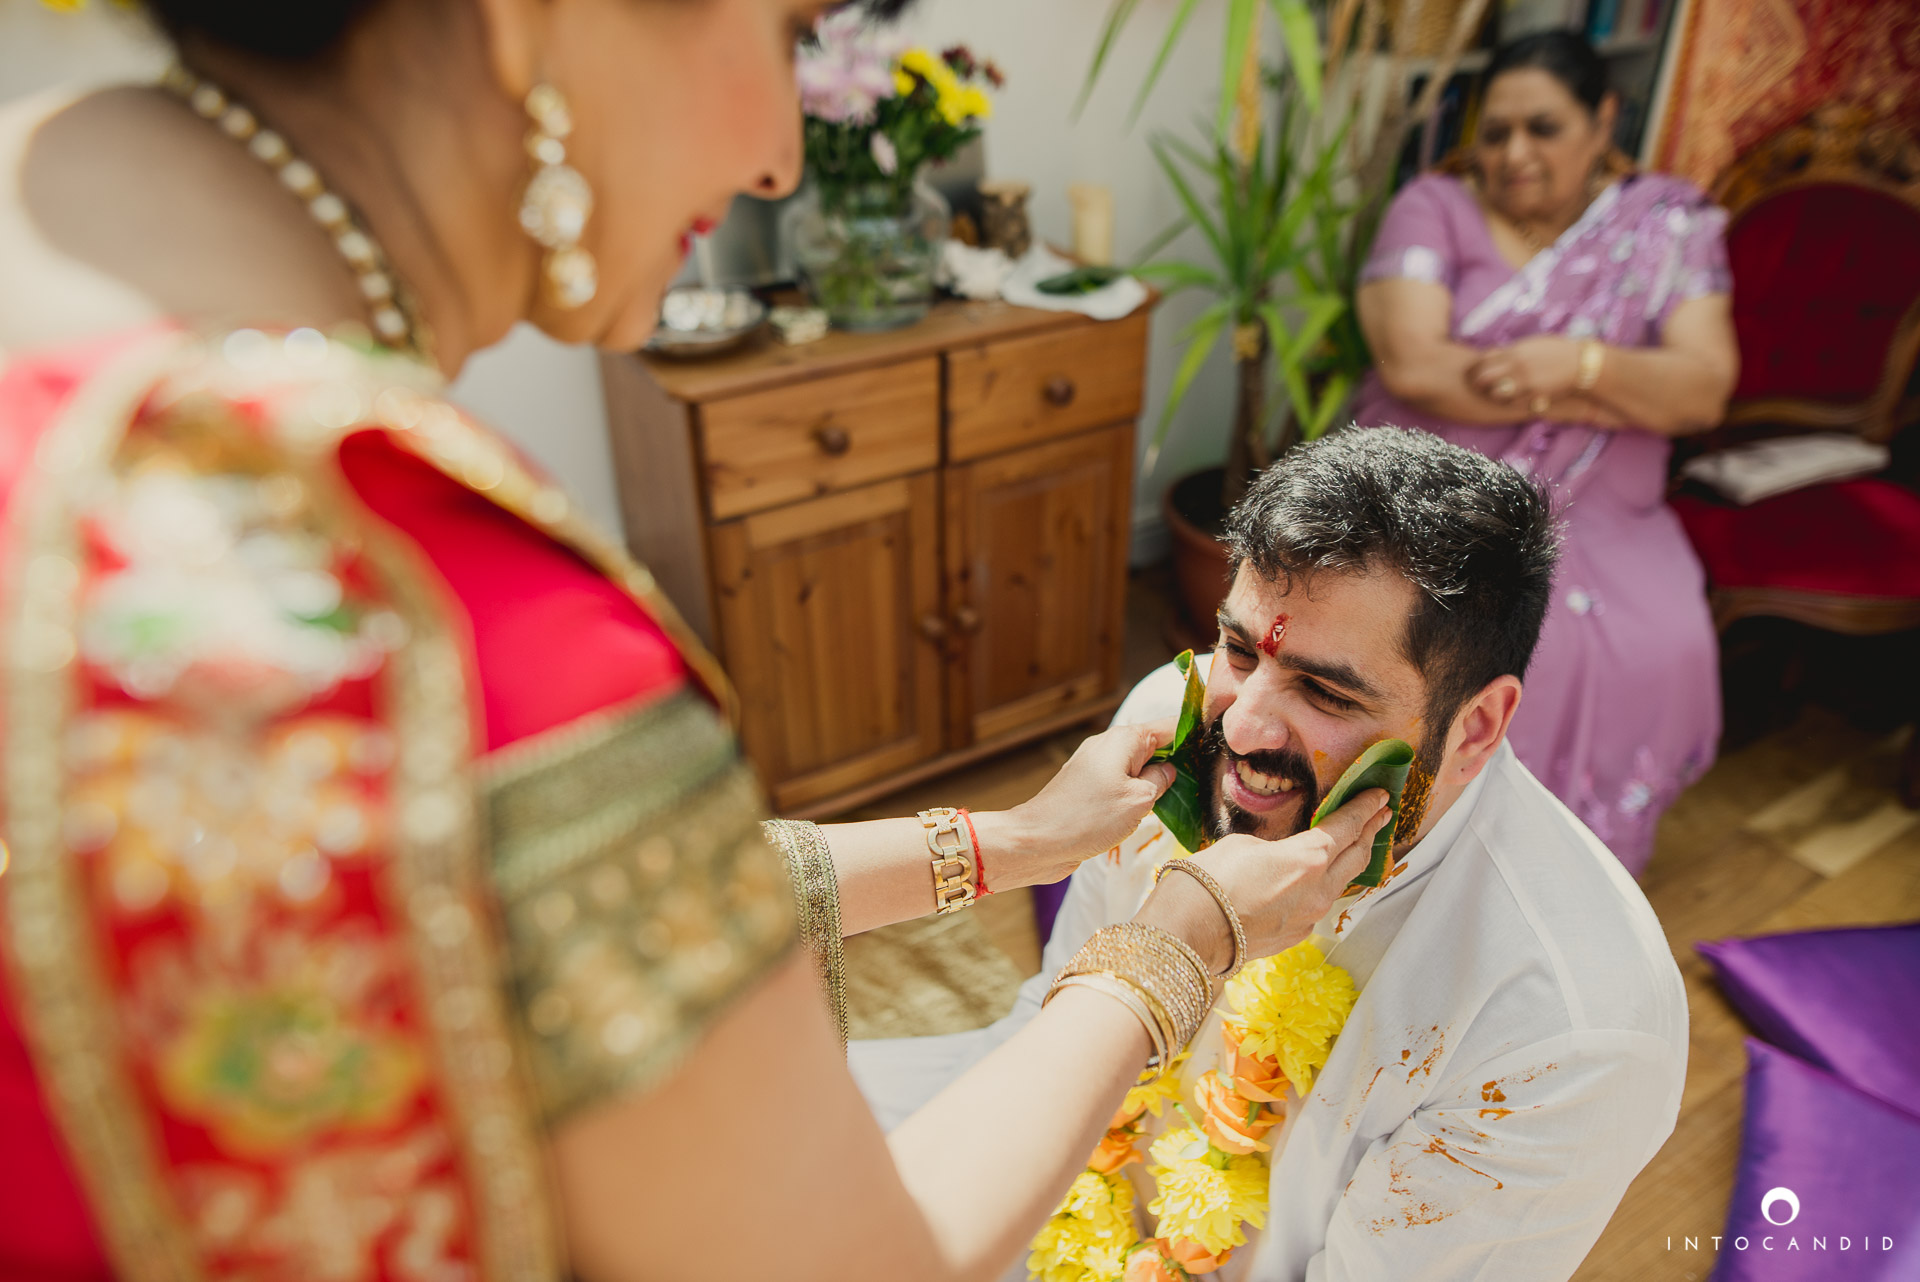 London_Wedding_Photographer_Intocandid_Photography_Ketan & Manasvi_11.JPG